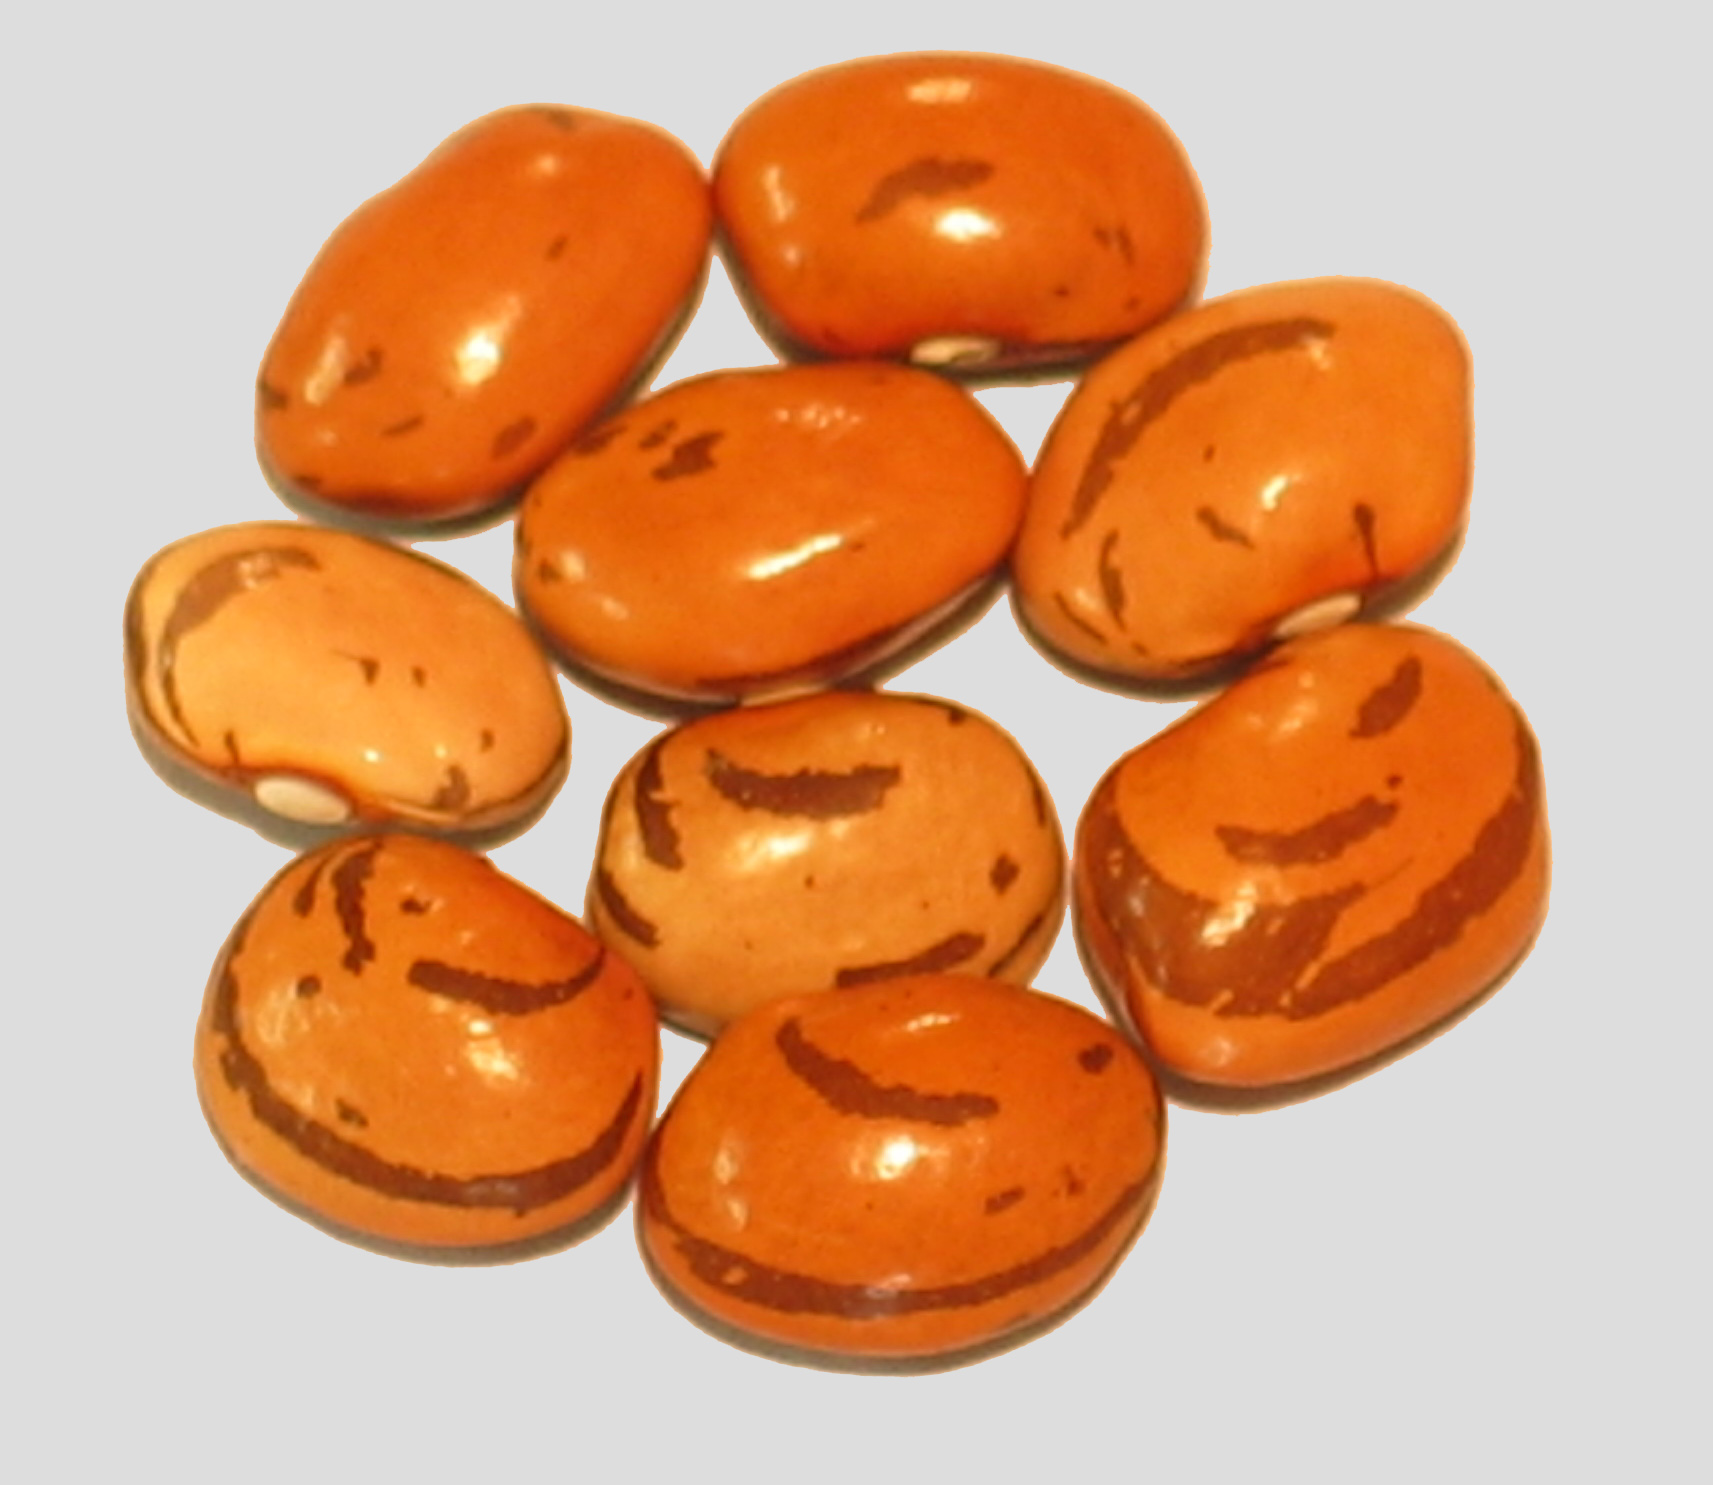 image of Fanomen beans